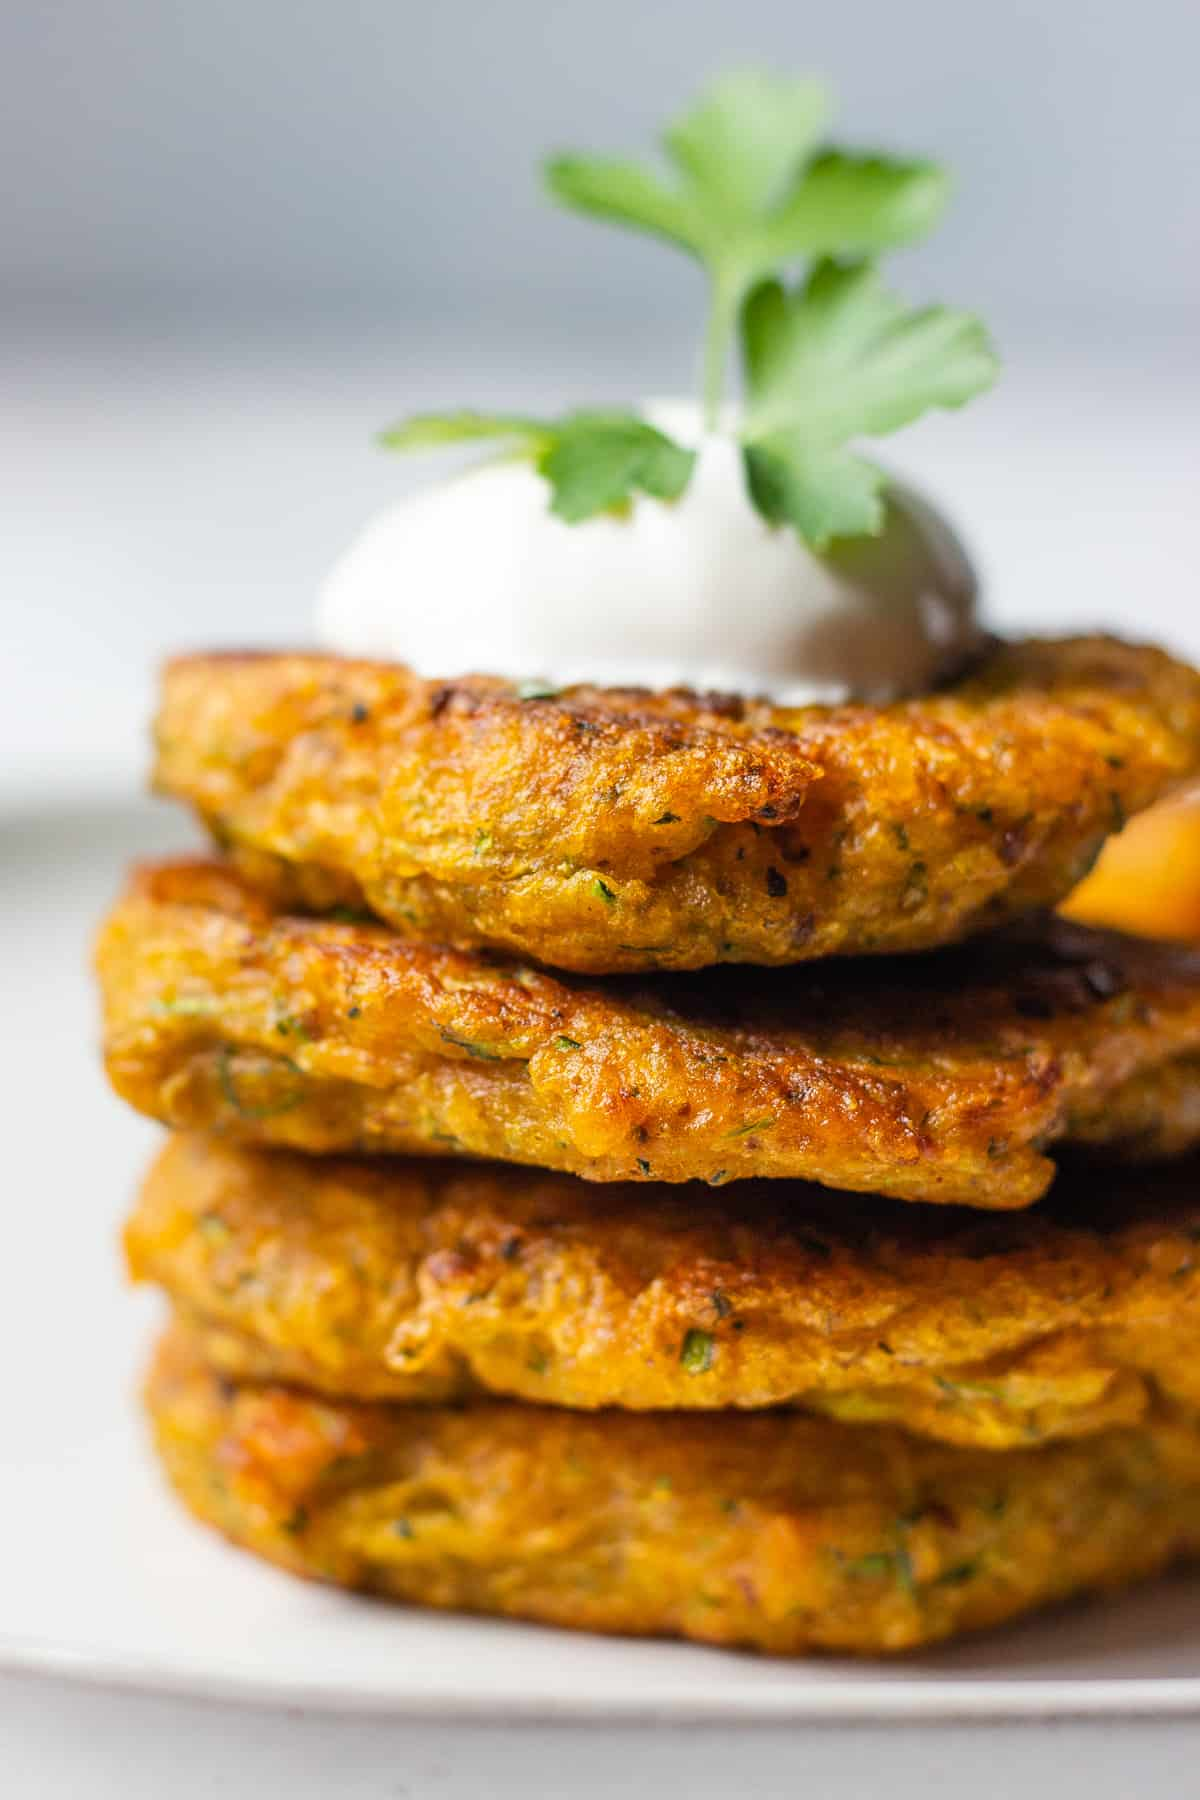 Stack of four pumpkin and zucchini fritters on a white plate against blue background